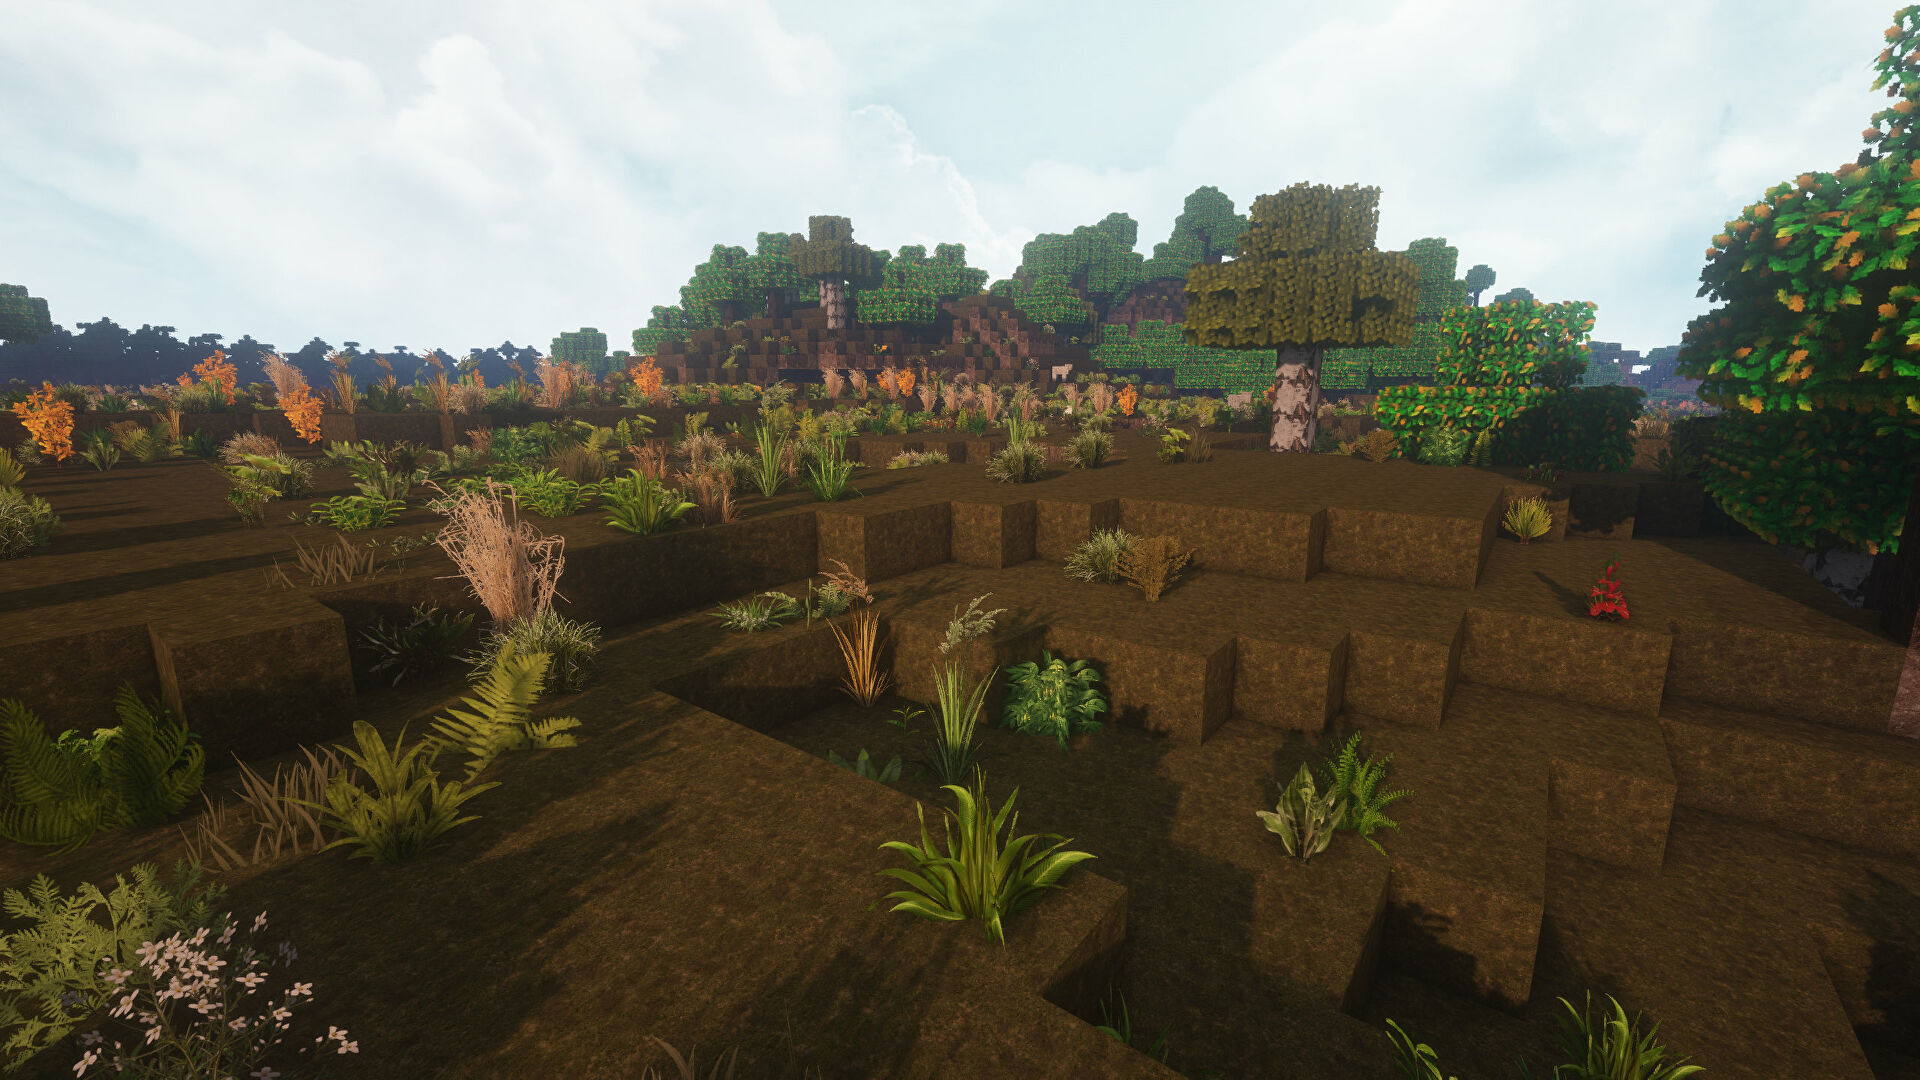 A Minecraft screenshot of a landscape displayed using the LB Photo Realism Texture Pack.